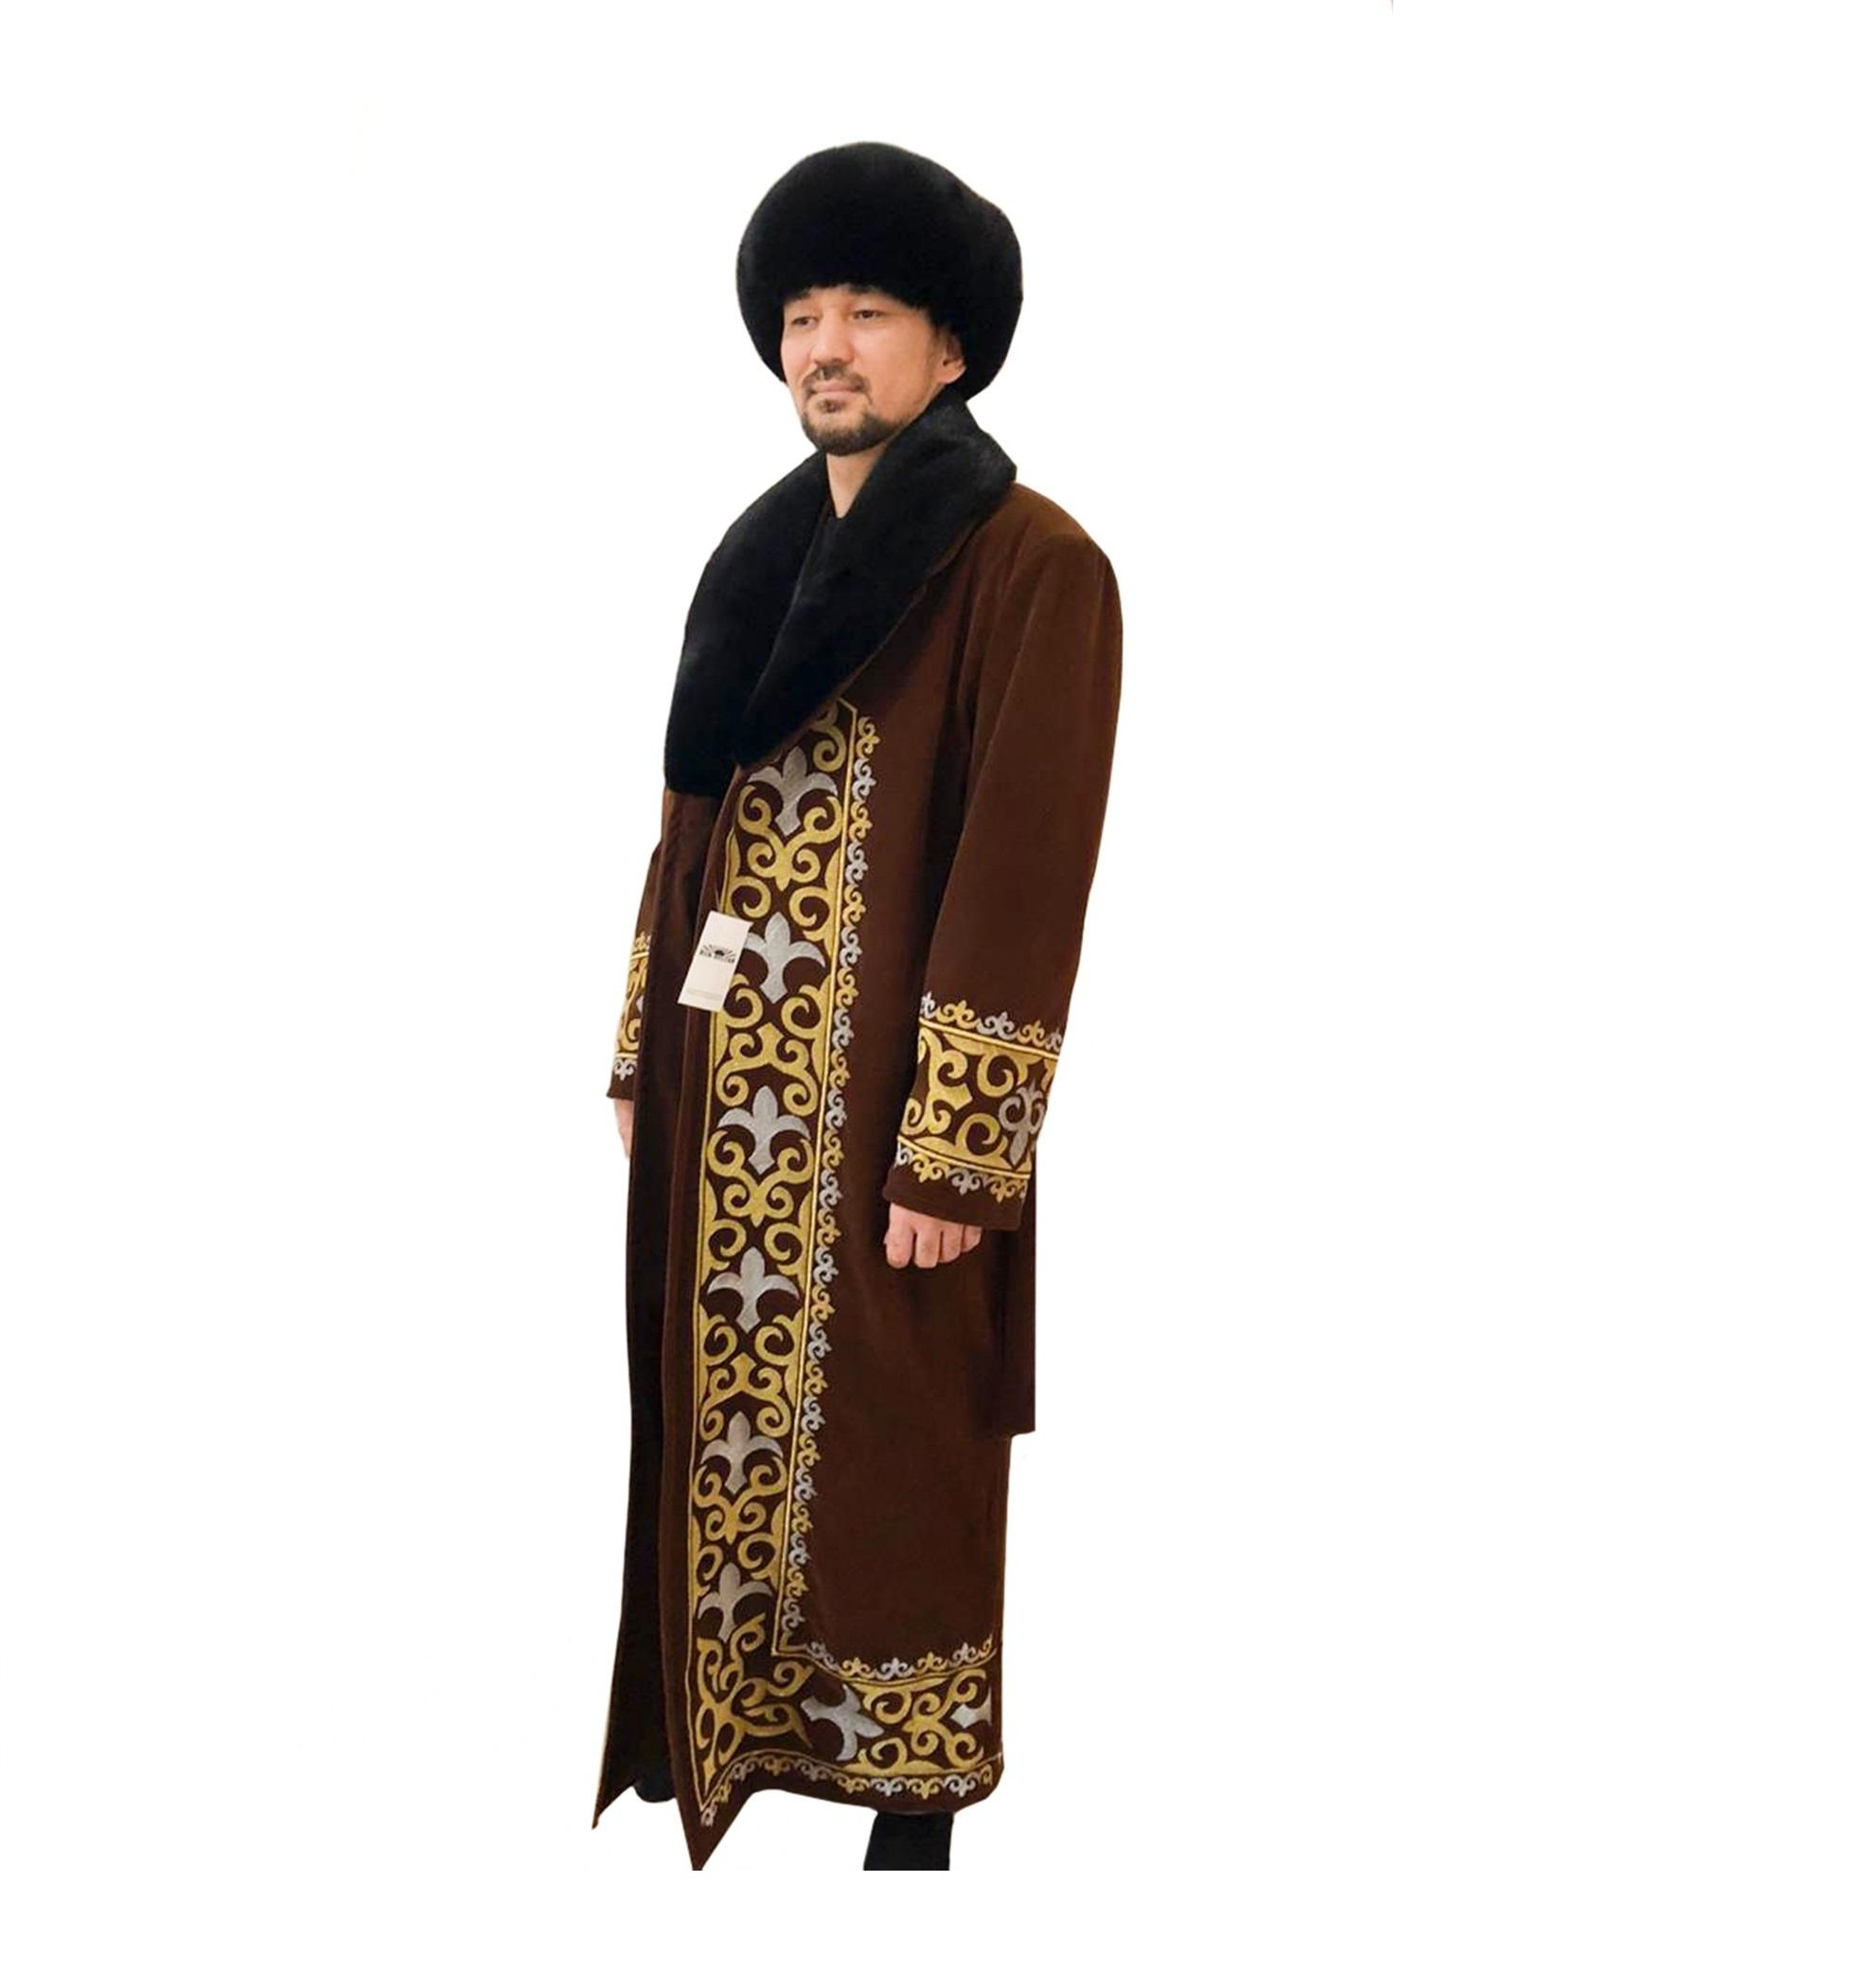 Kazakh national style traditional Men velvet Beshmet caftan coat outerwear clothing